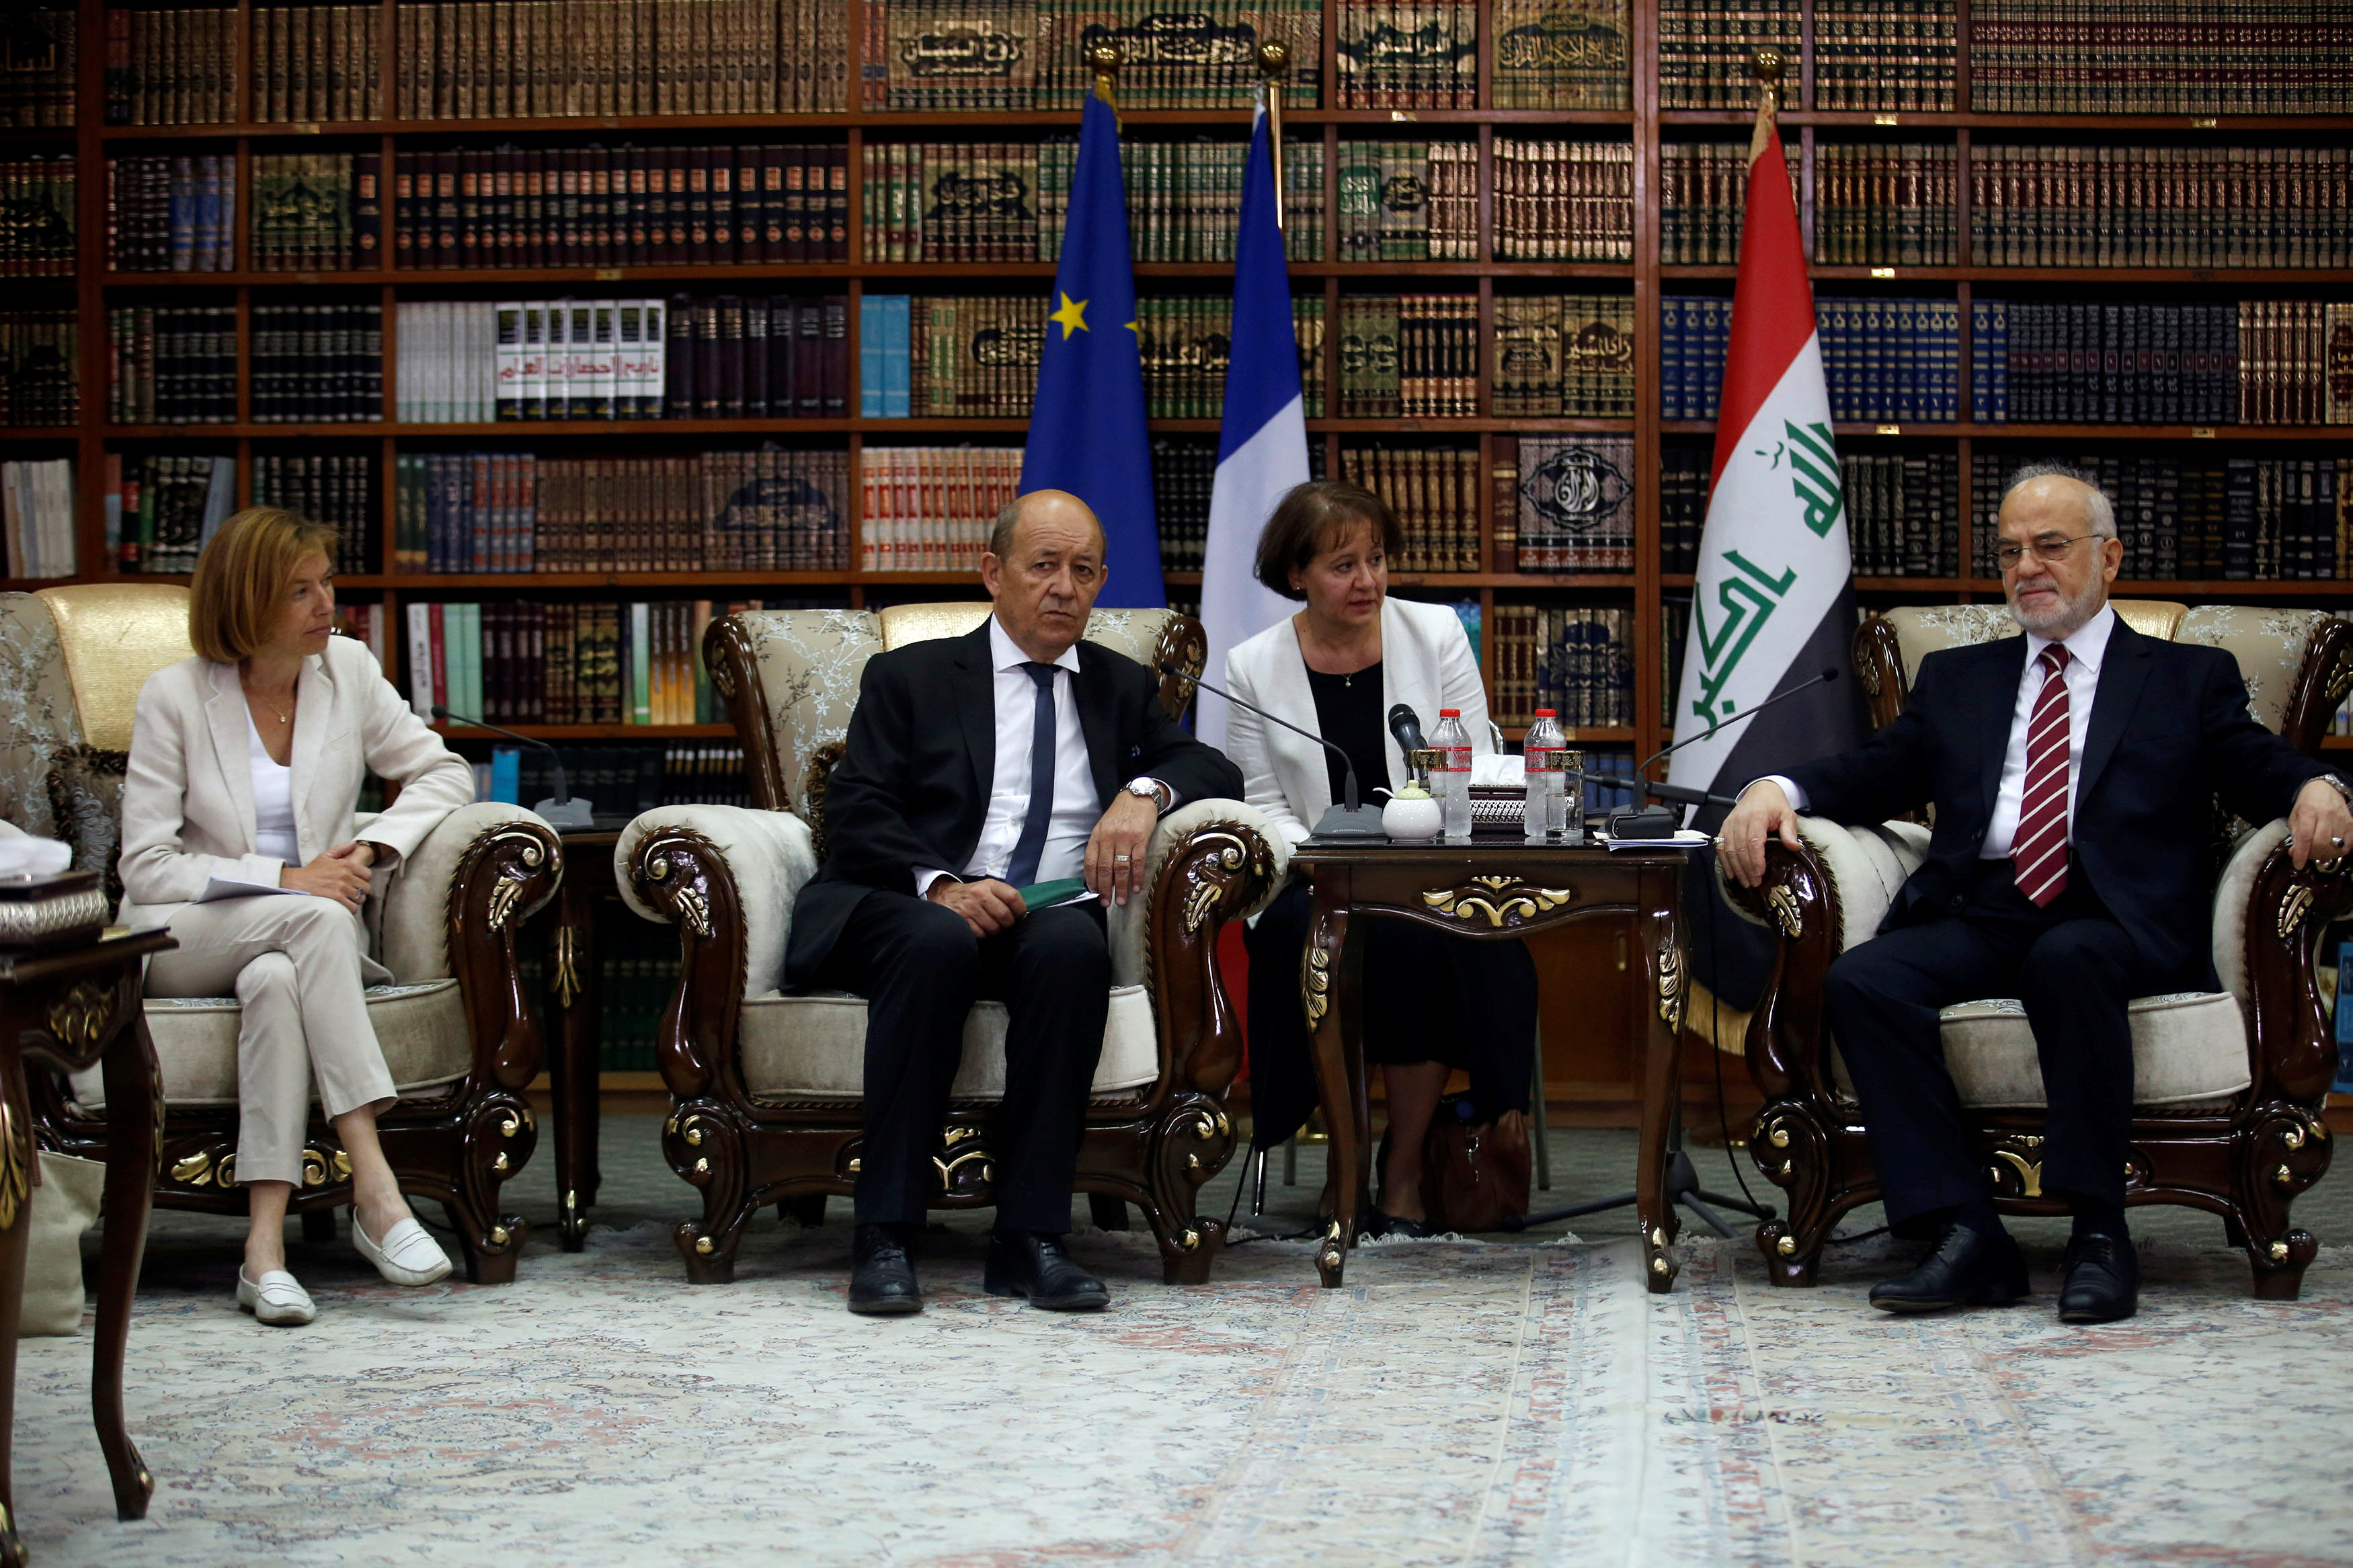 French Foreign Minister Jean-Yves Le Drian (C) and French Defence Minister Florence Parly (L) meet with Iraqi Foreign Minister Ibrahim al-Jaafari in Baghdad, Iraq August 26, 2017. REUTERS/Khalid al Mousily